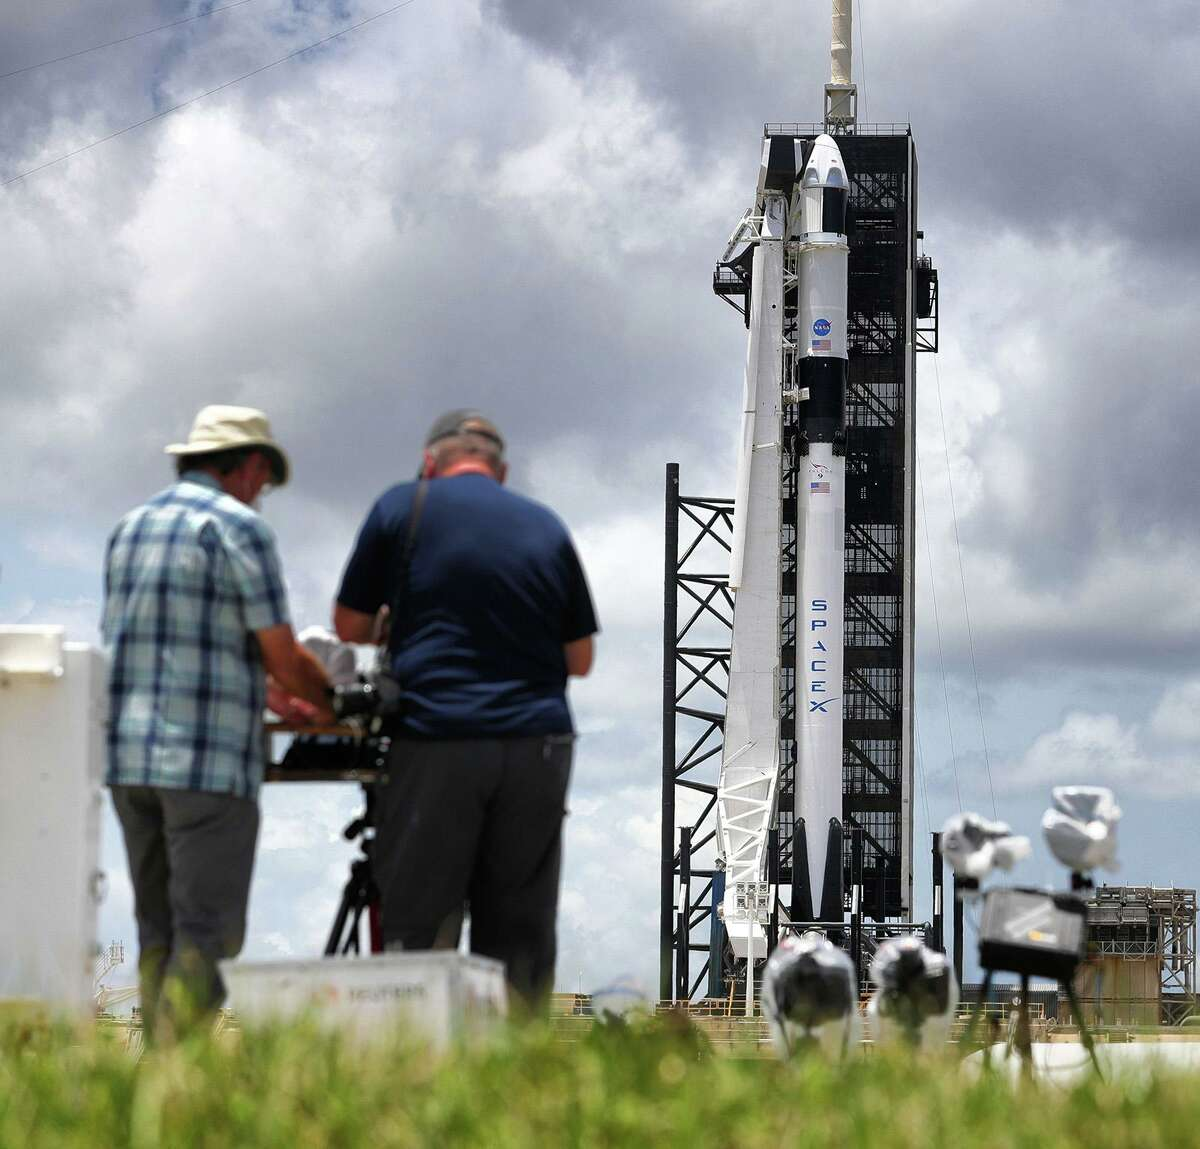 News photographers set up remote cameras as the Crew Dragon capsule sits on top of the SpaceX Falcon 9 rocket at Launch Complex 39-A at Kennedy Space Center, Fla., Friday, May 29, 2020. The second launch attempt of the Demo-2 mission is scheduled for Saturday at 3:22pm. (Joe Burbank/Orlando Sentinel/TNS)